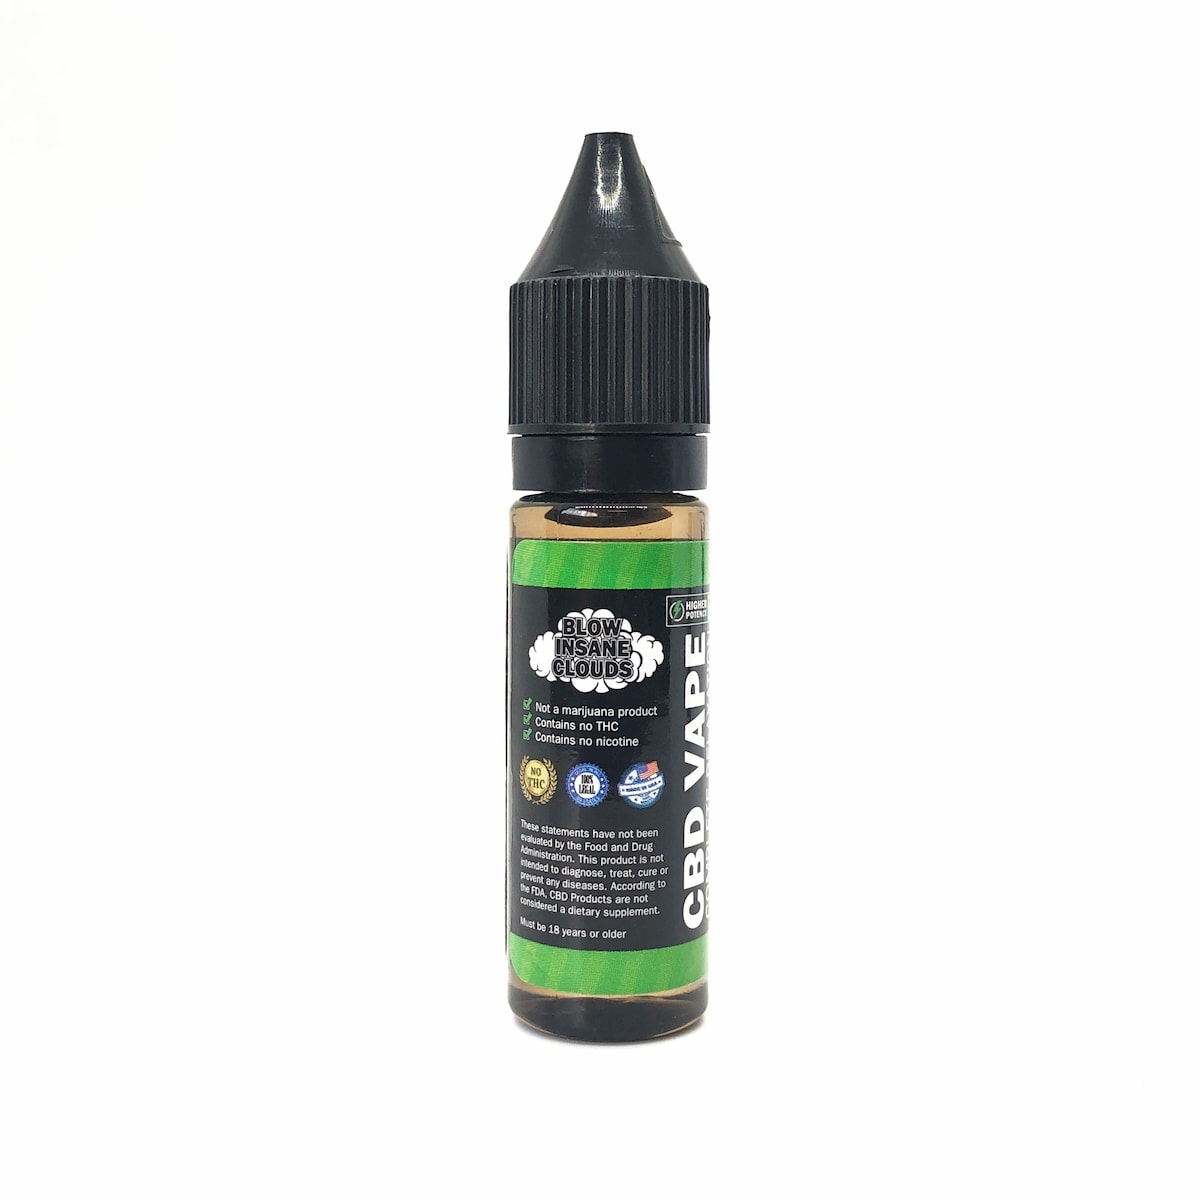 Hemp Bombs, CBD E-Liquid, Roasted Colombian Coffee, 16.5ml, 75mg of CBD-back